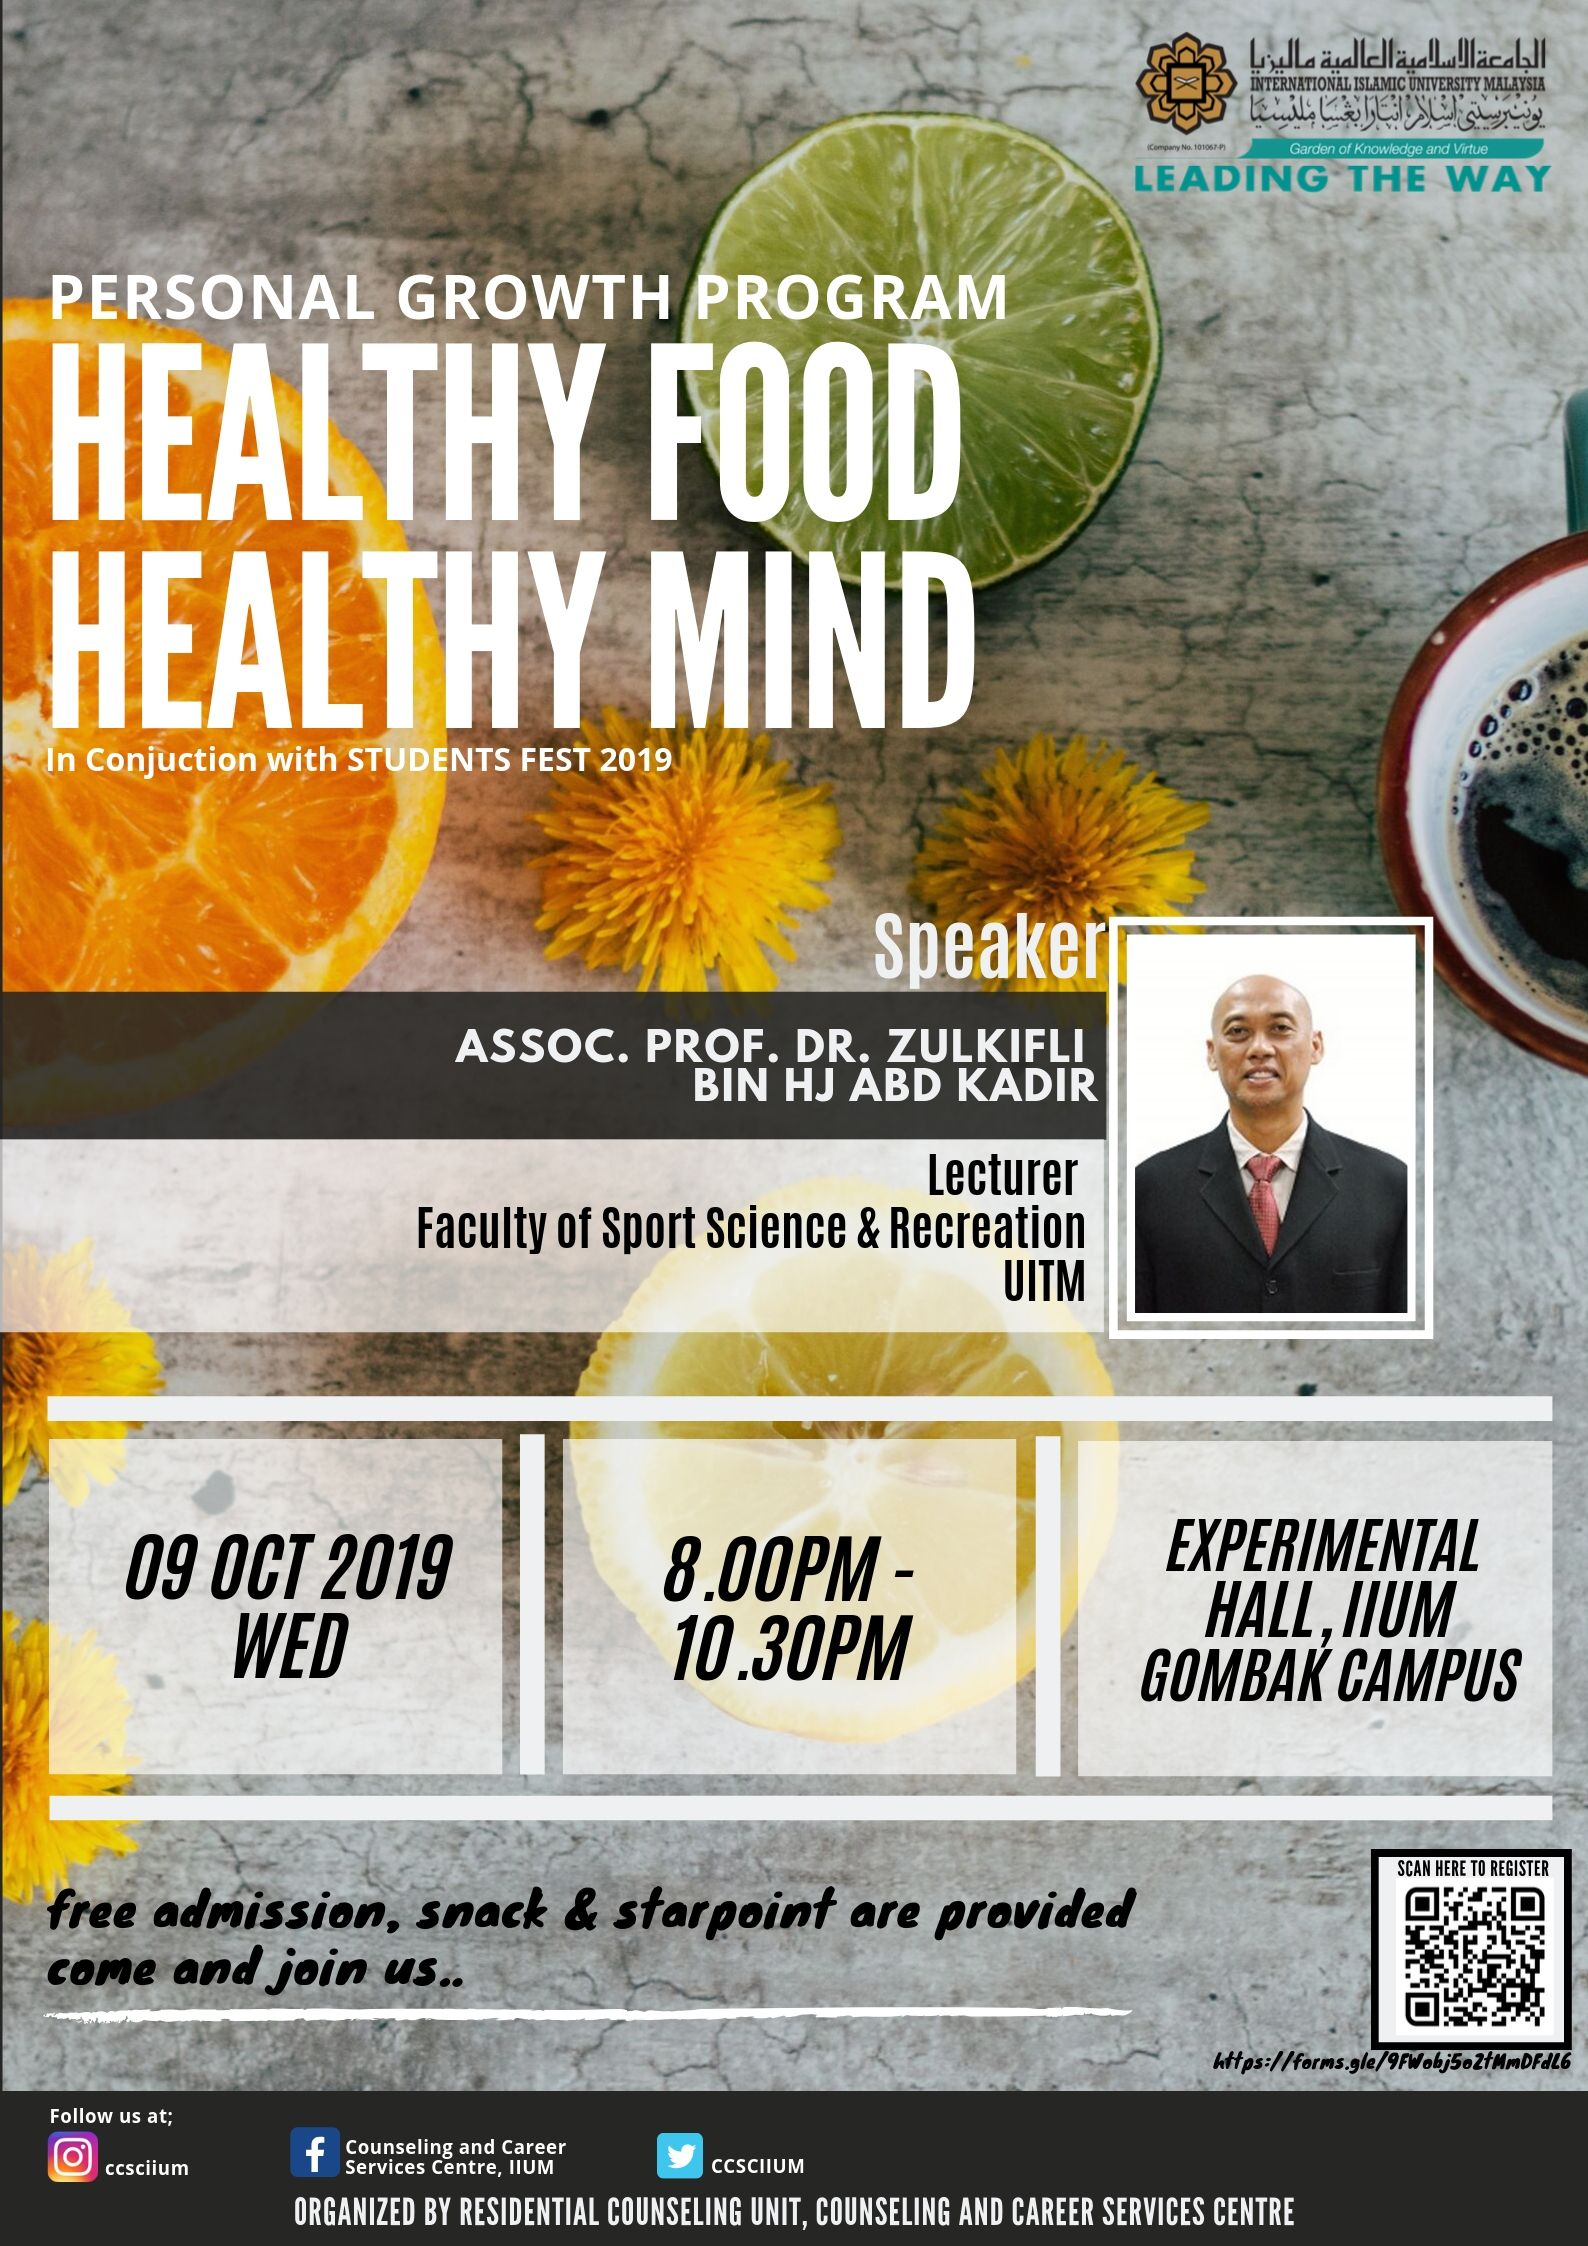 PERSONAL GROWTH PROGRAM : HEALTHY FOOD HEALTHY MIND